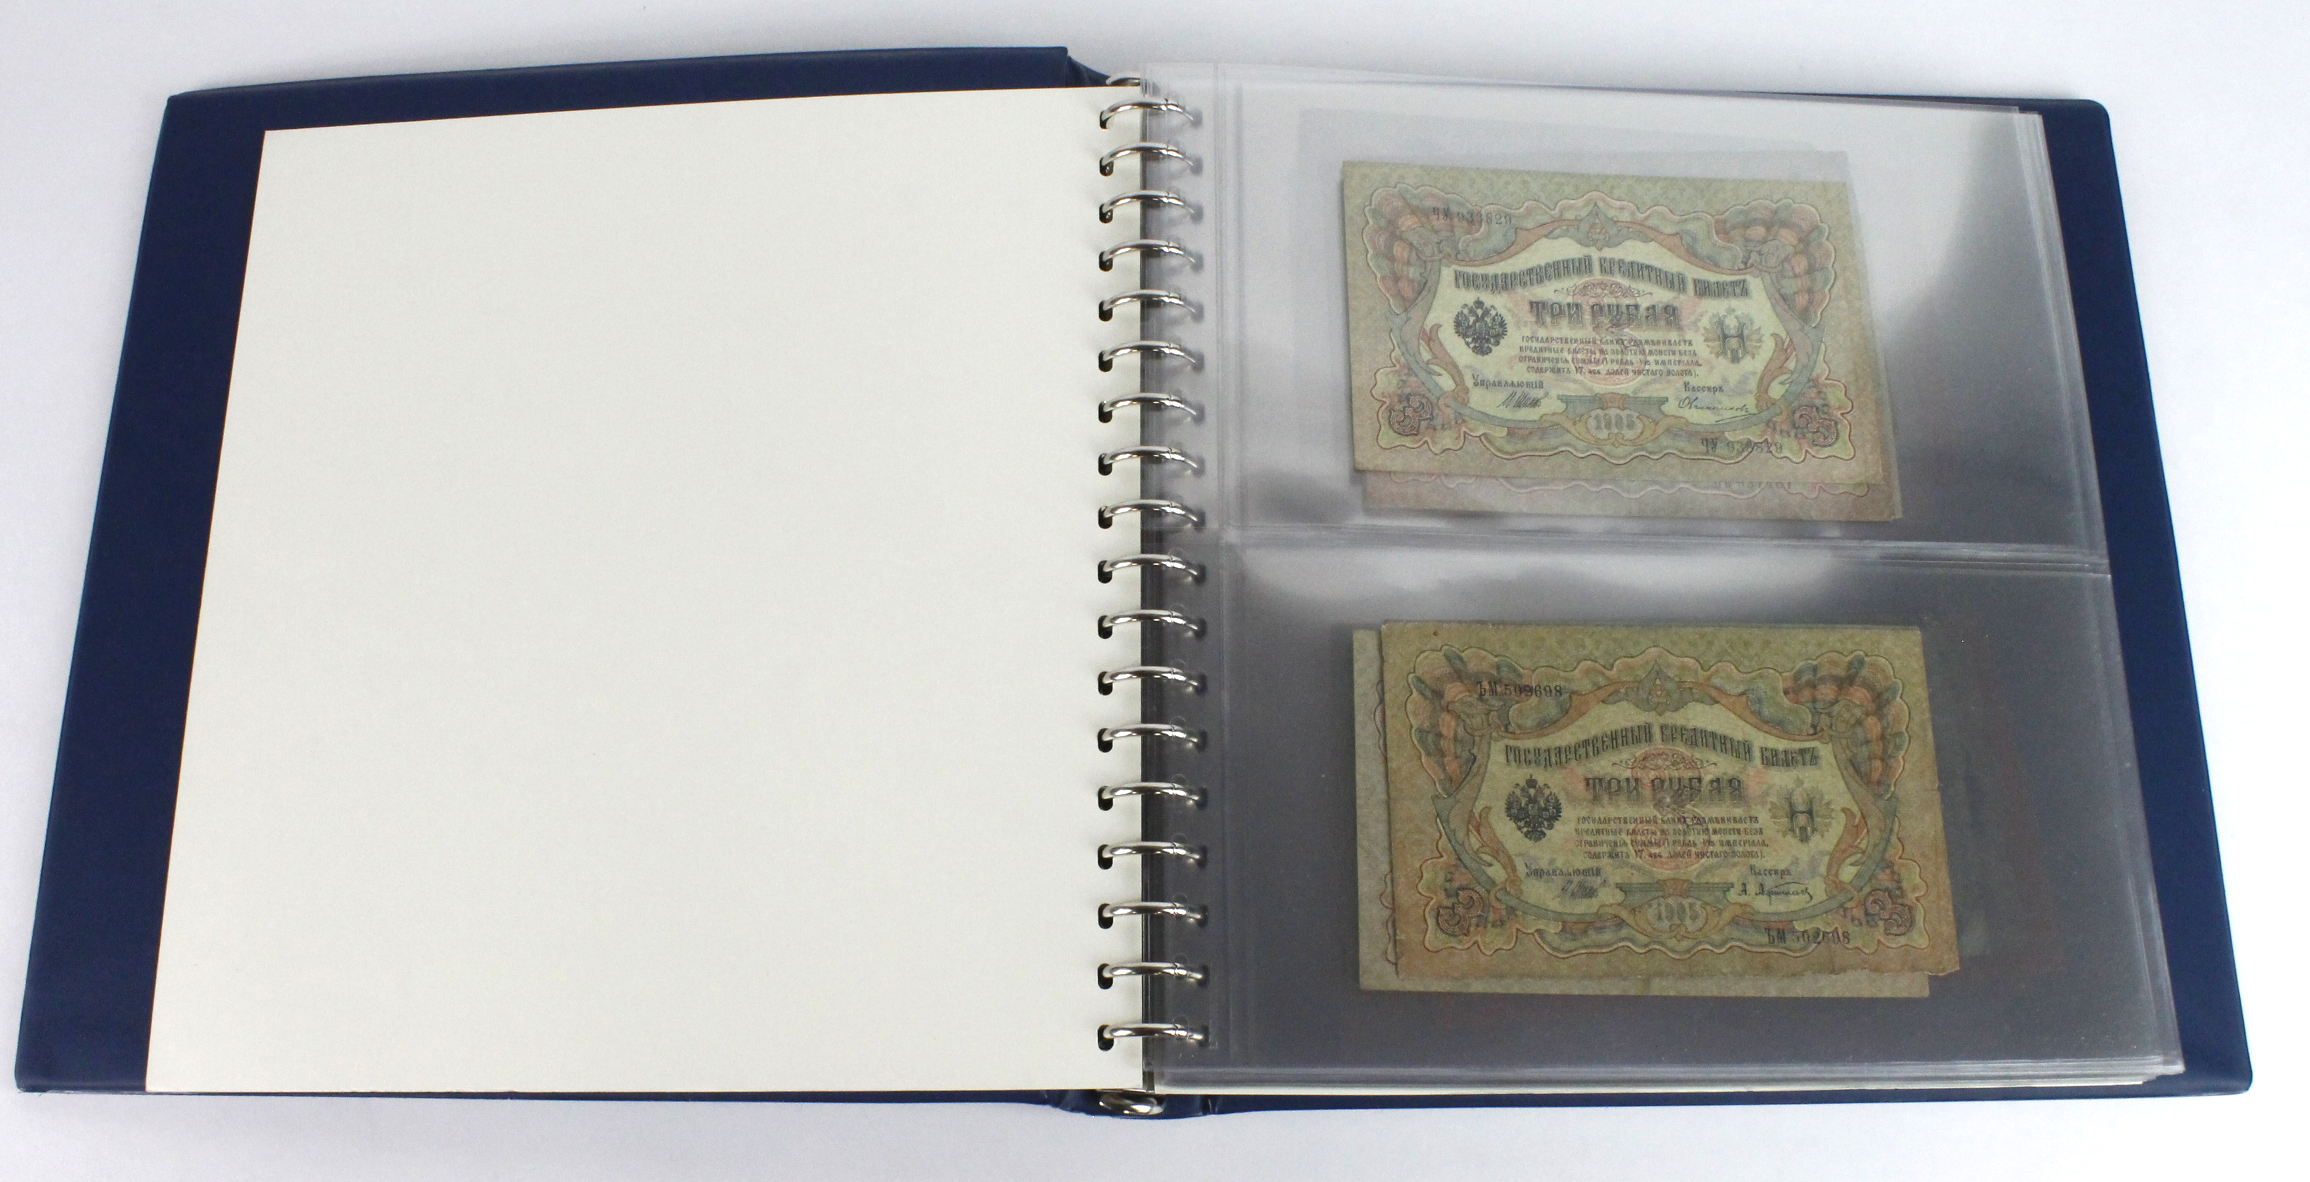 Russia (90), a collection in Lindner album ranging from 1898 to 1997 including very large early 20th